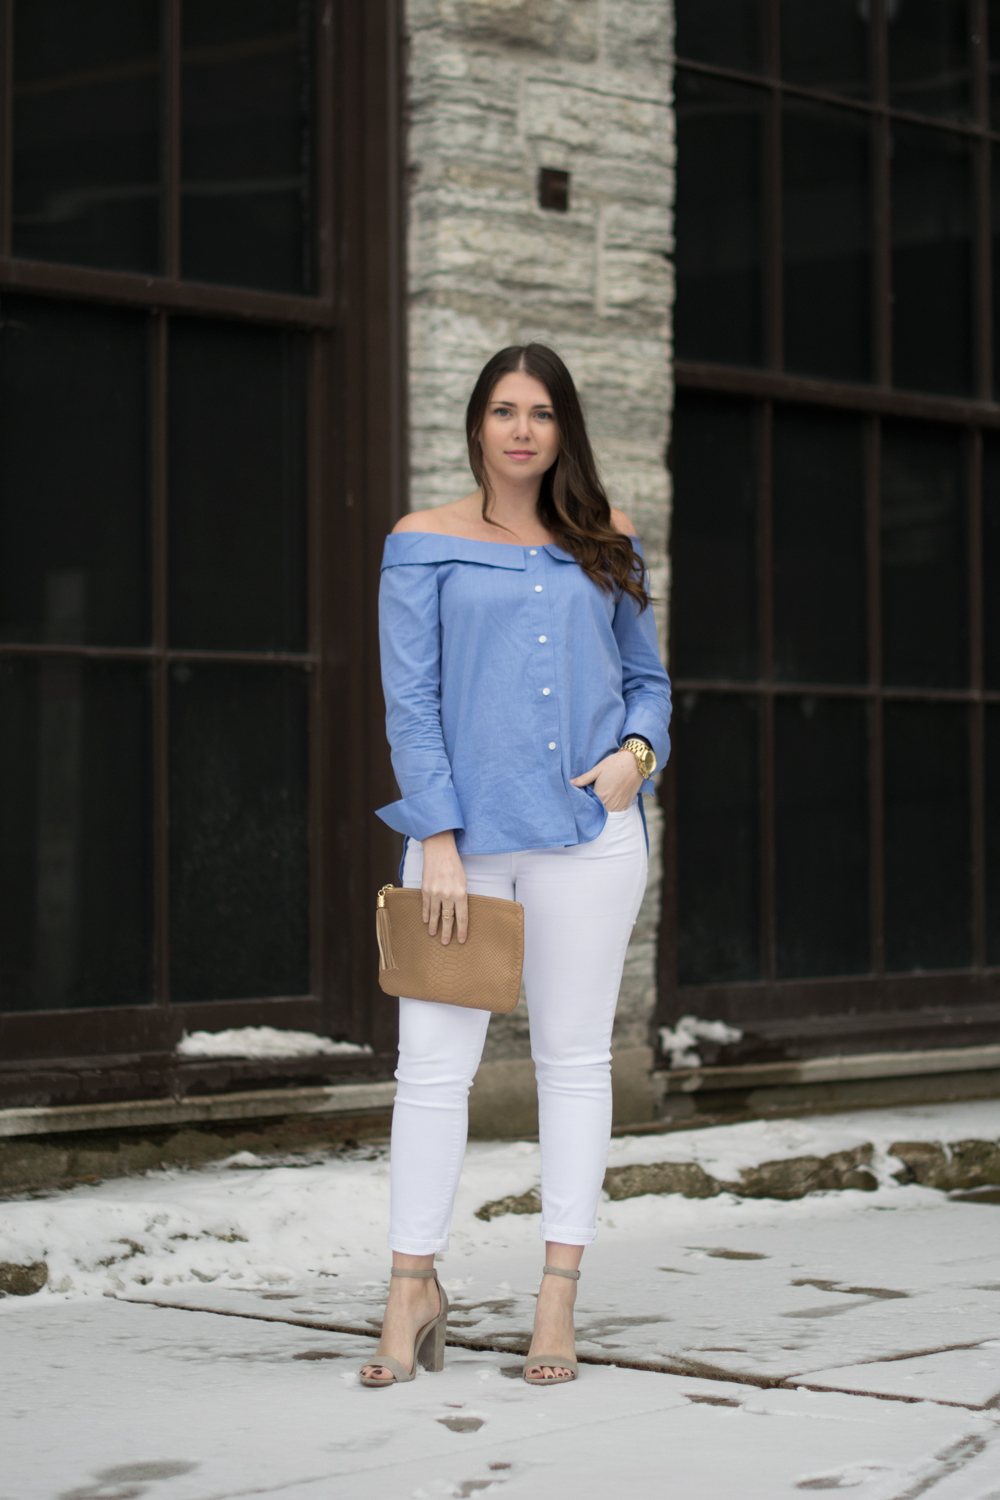 Young woman in blue off the shoulder top and white jeans.